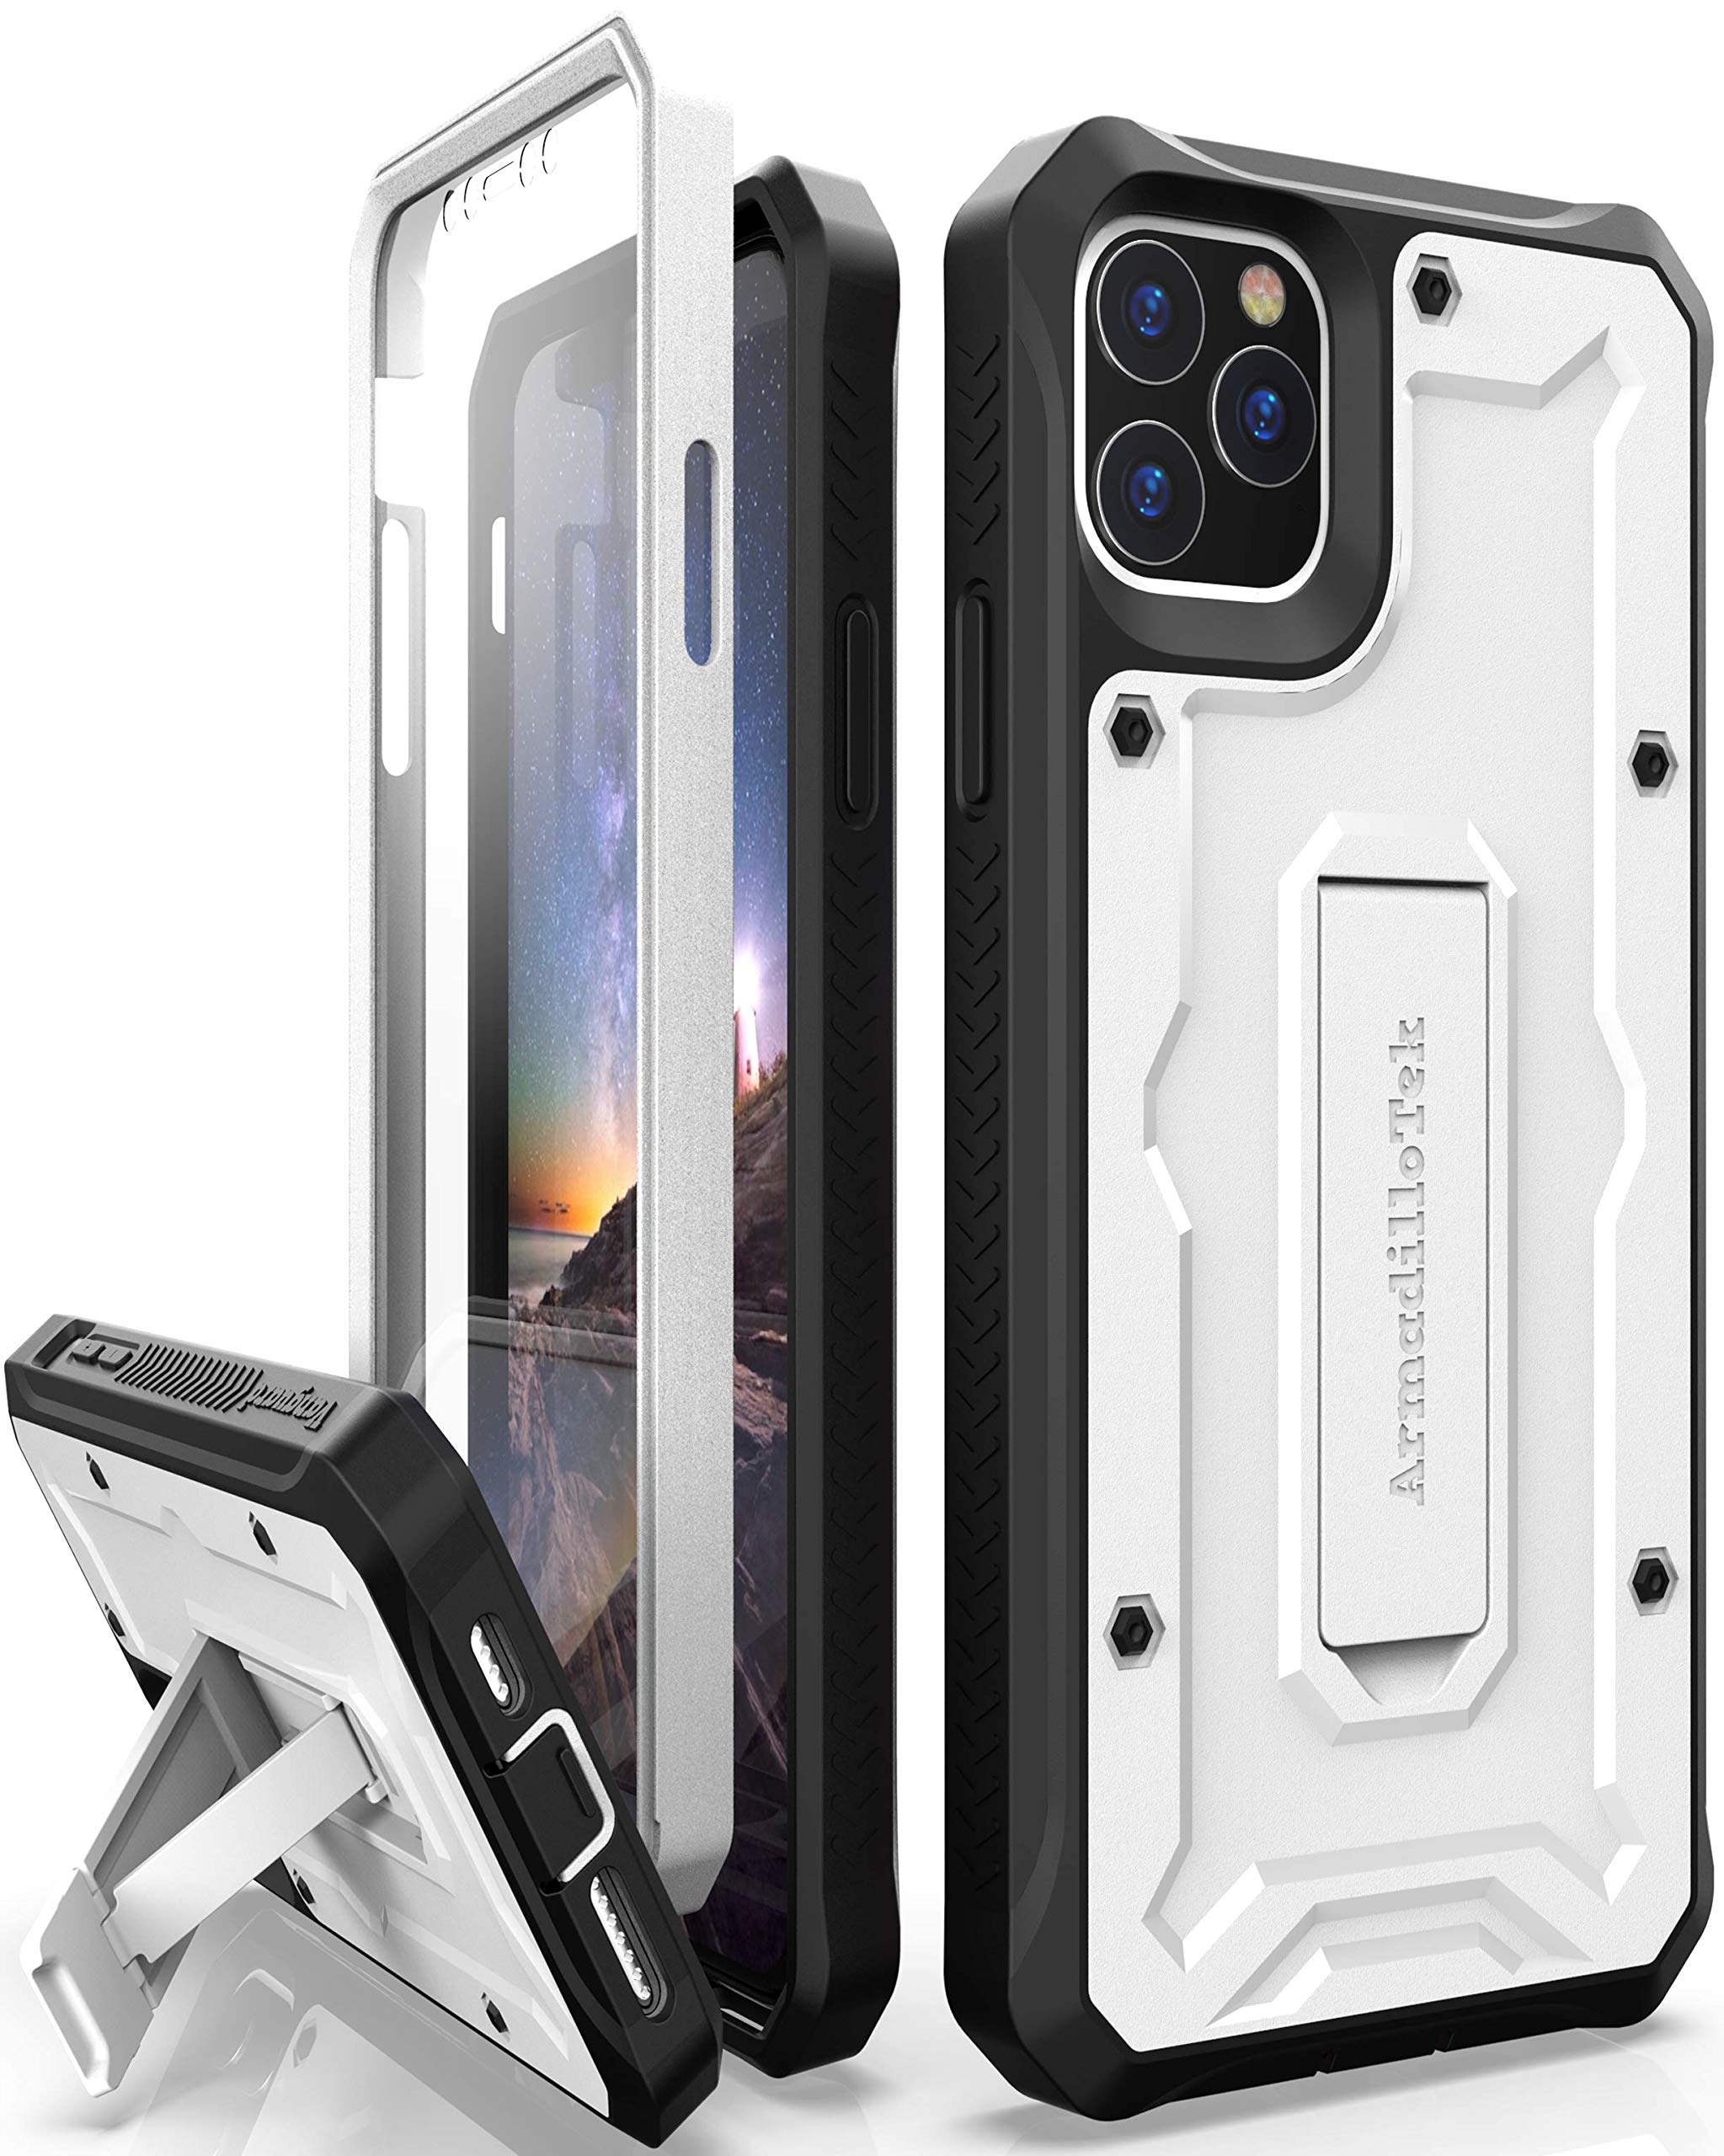 ArmadilloTek Vanguard Designed for iPhone 11 Pro Max Case (6.5 inches) Military Grade Full-Body Rugged with Kickstand and Built-in Screen Protector - White